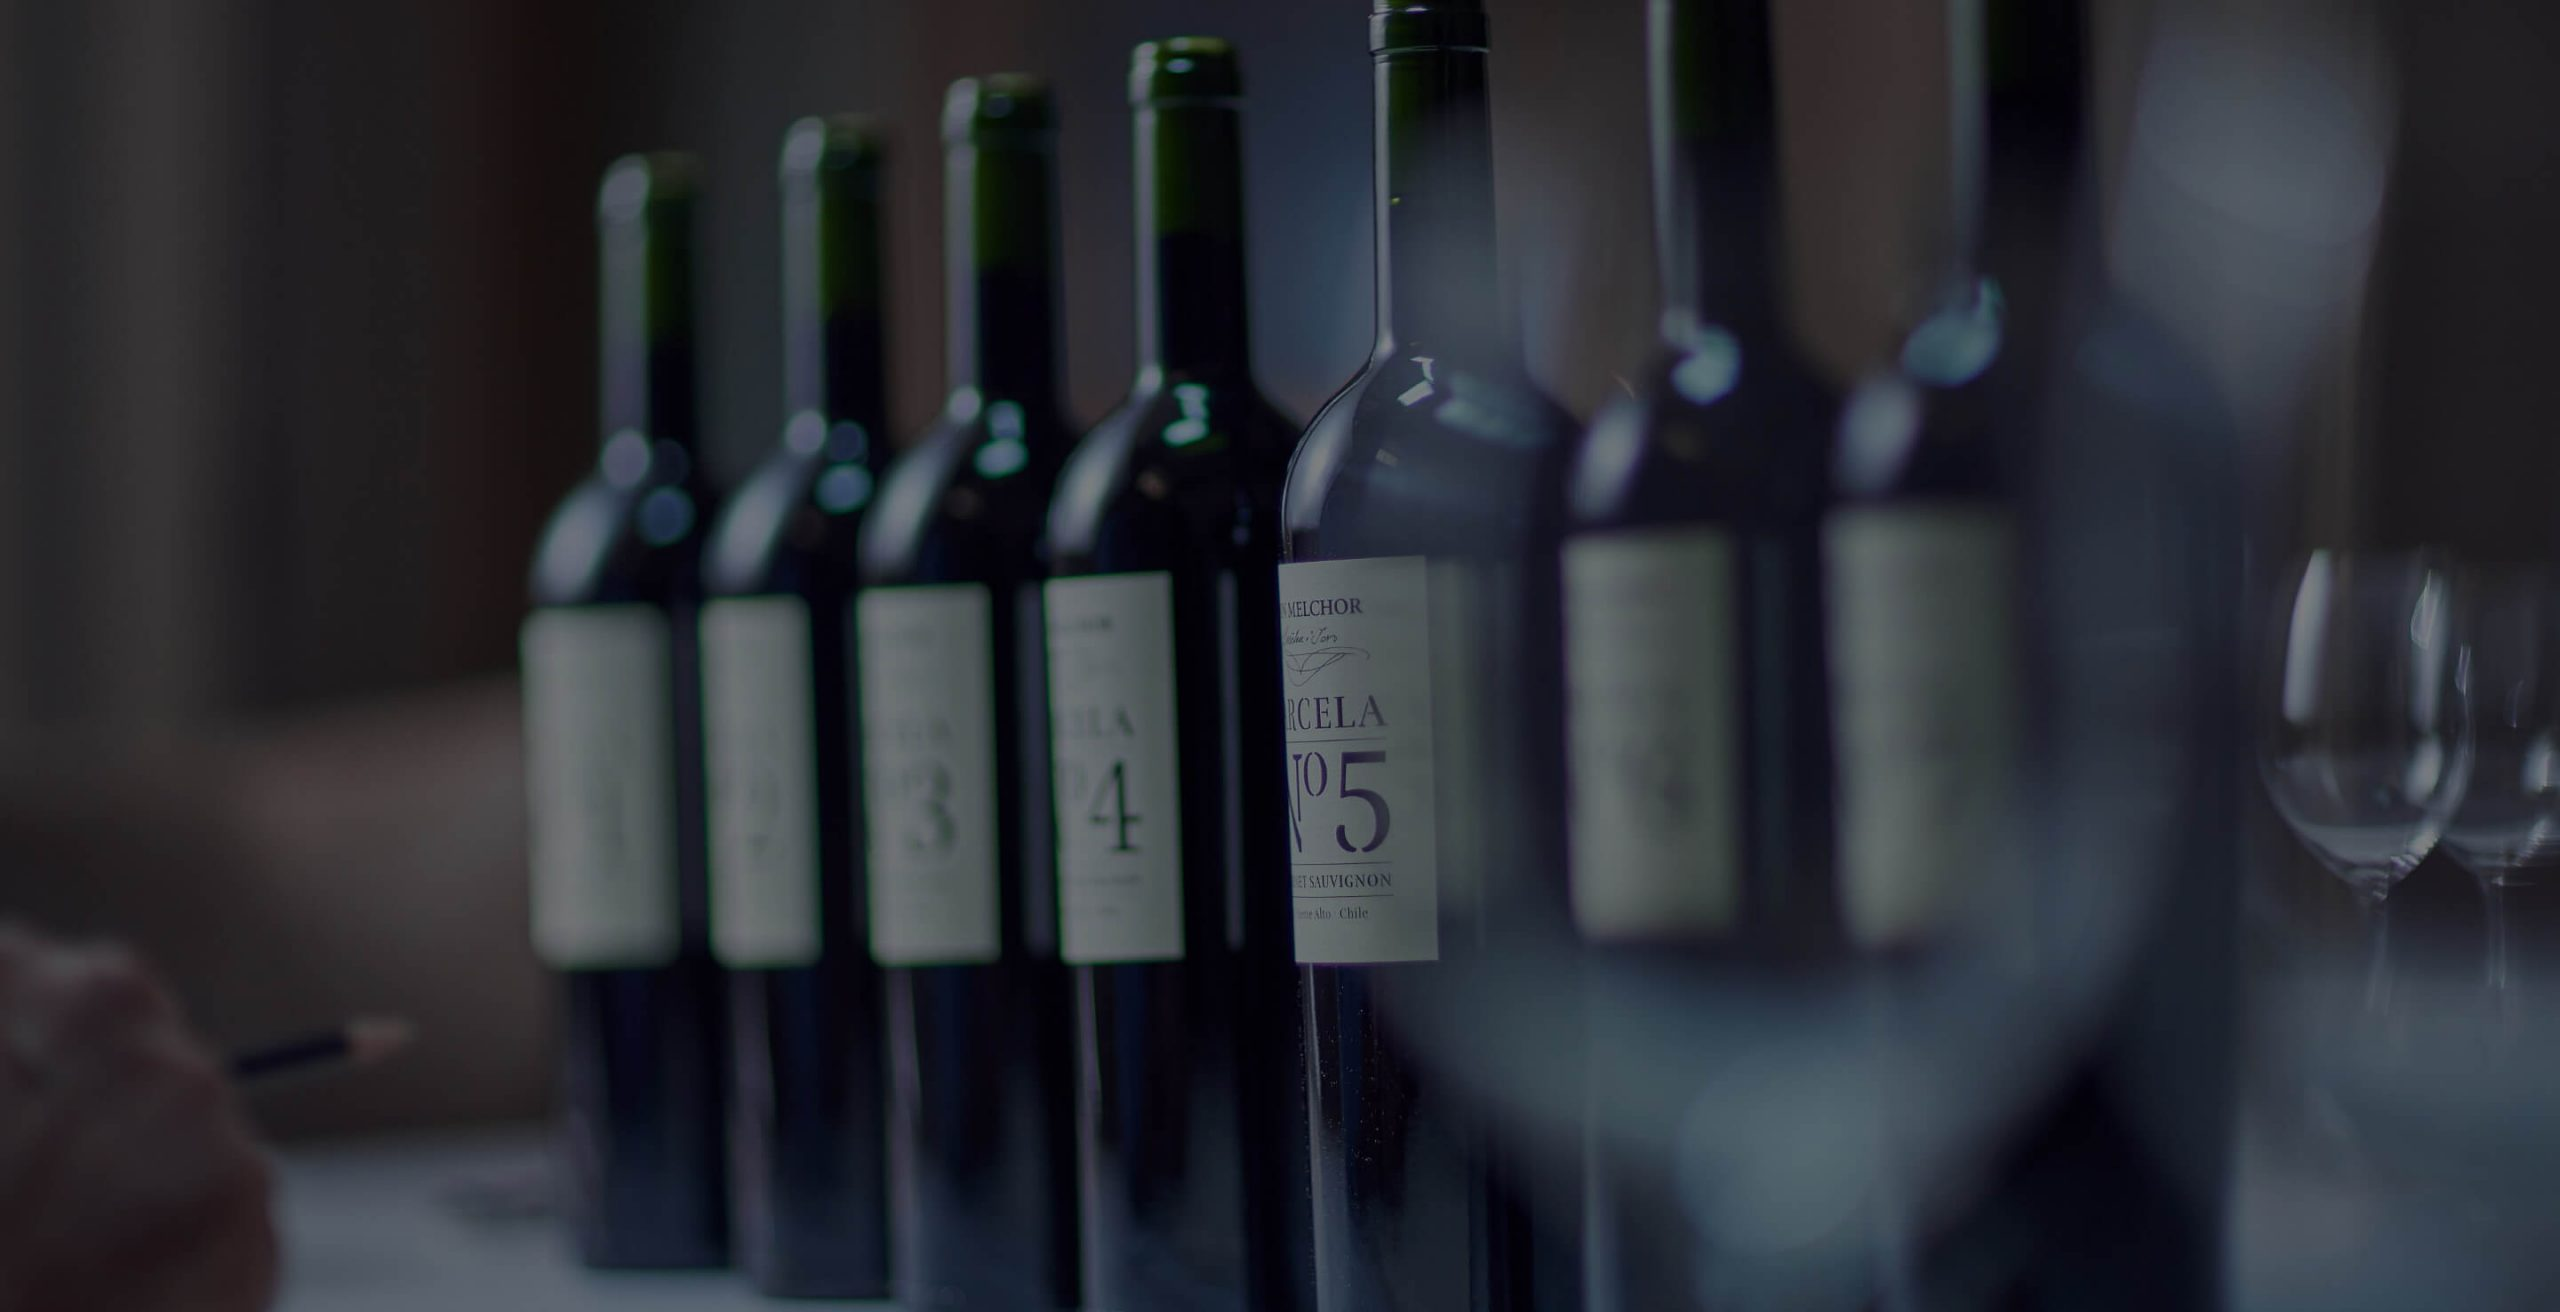 Discover the world of Chile's first icon wine